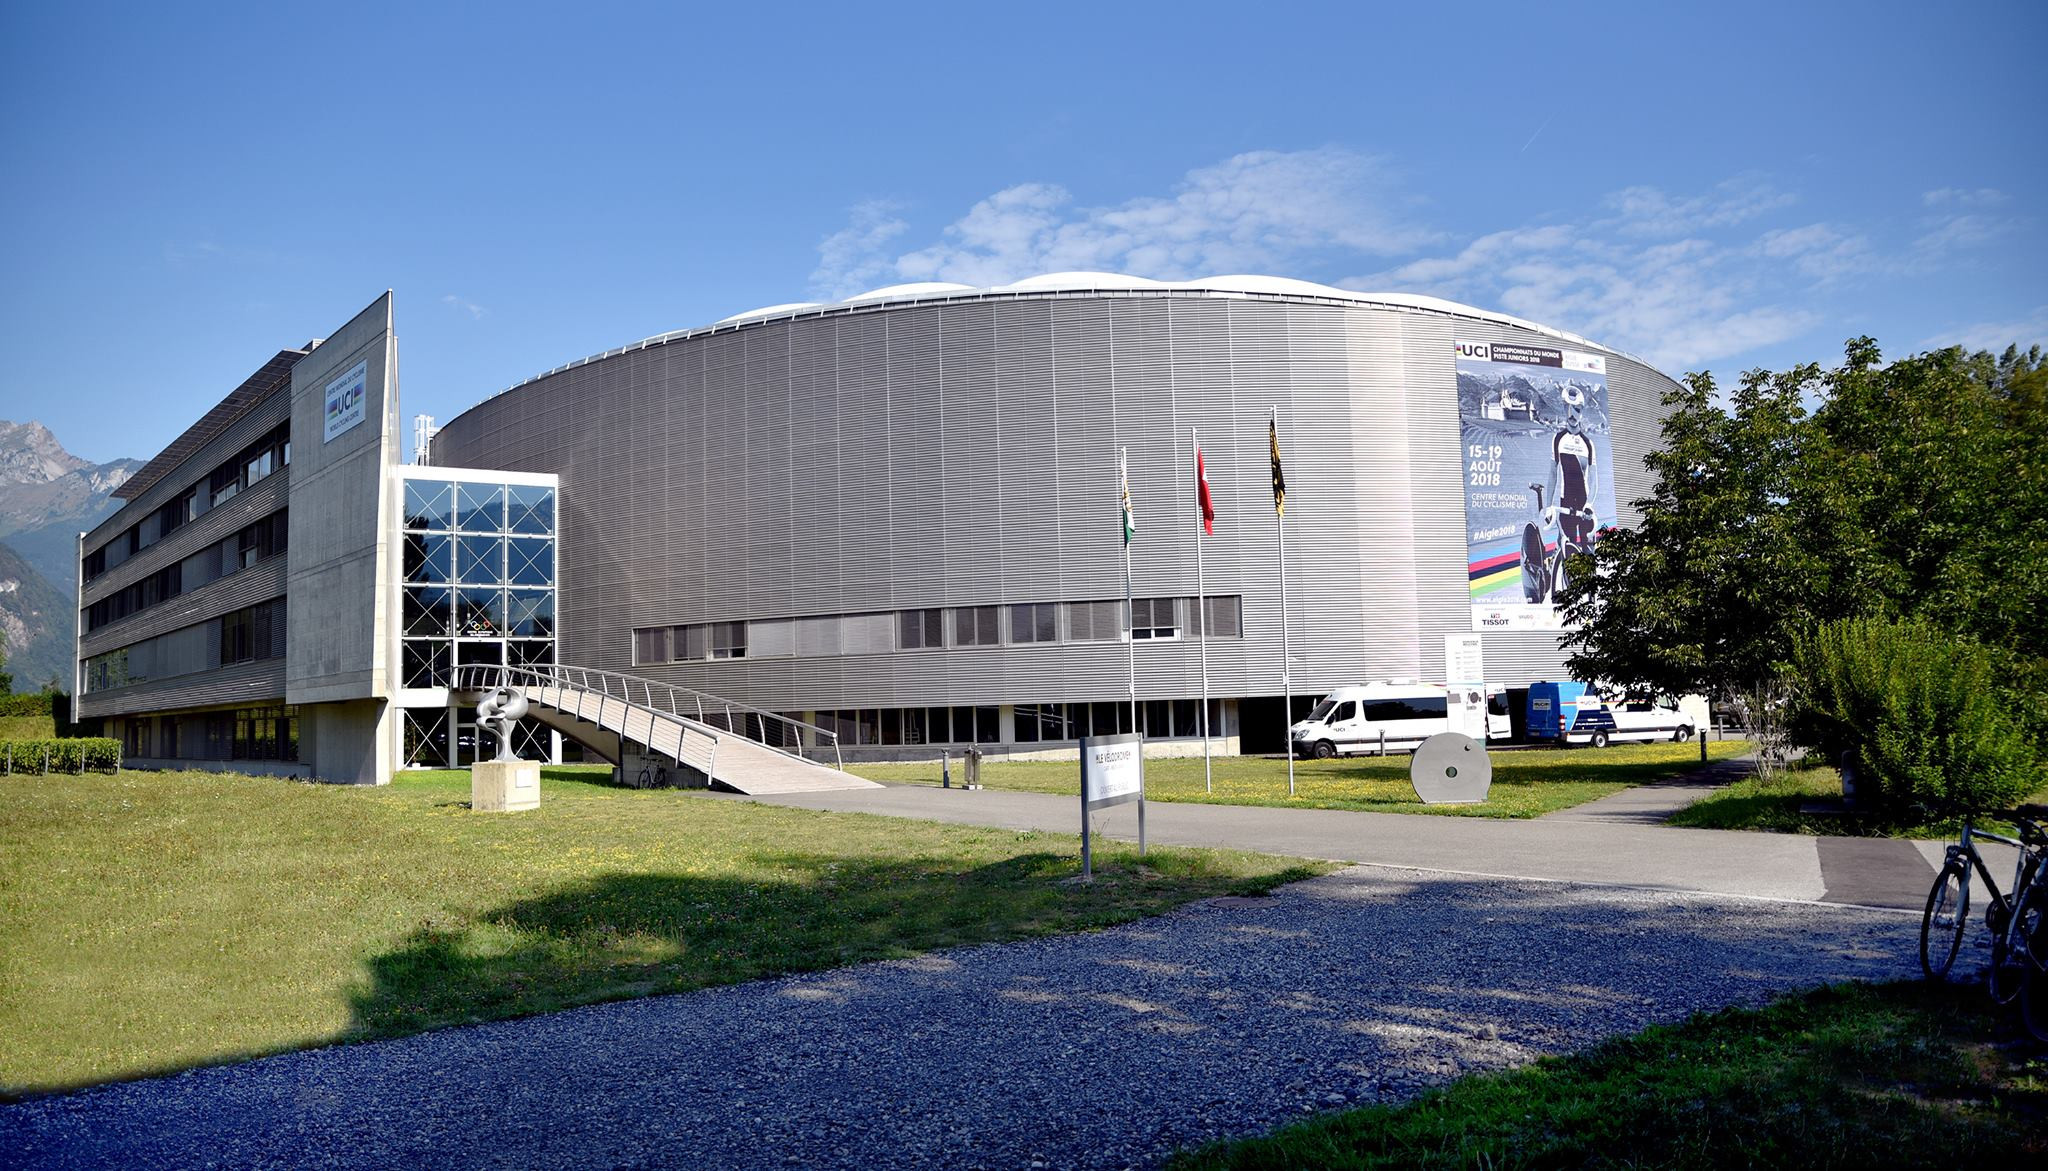 UCI vow to improve governance at World Cycling Centre after dismissal of director